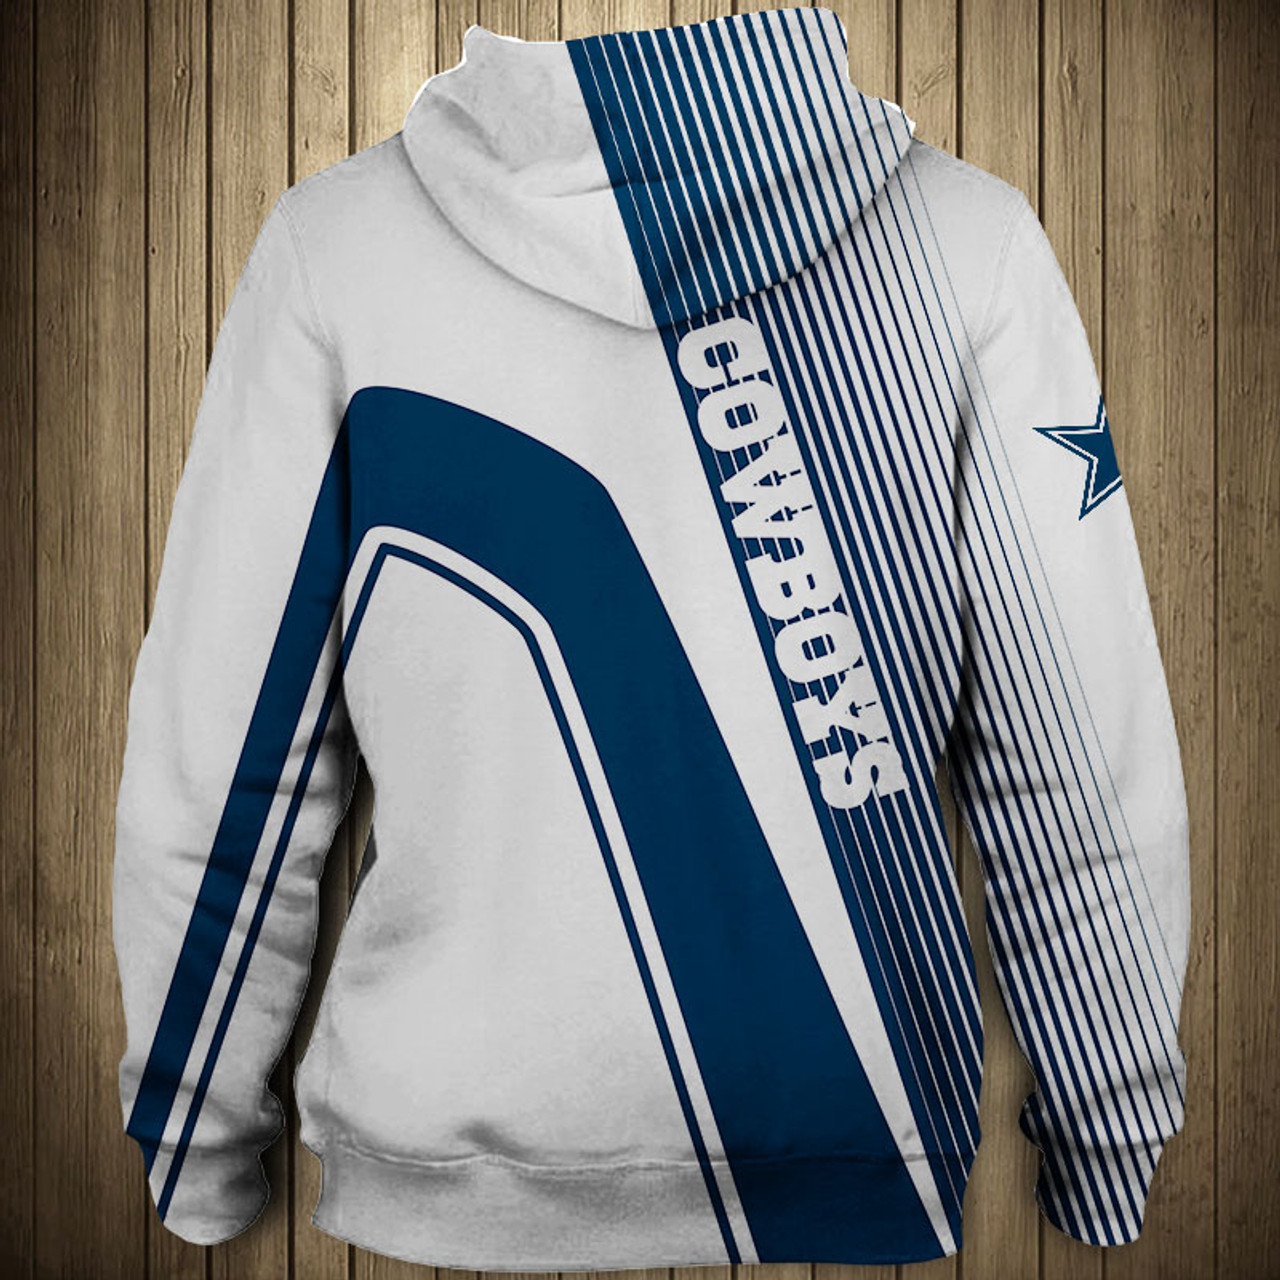 big sale 3d18f a7ae8 **(OFFICIAL-N.F.L.DALLAS-COWBOYS-PULLOVER-HOODIES/3D-CUSTOM-COWBOYS-LOGOS &  OFFICIAL-COWBOYS-TEAM-COLORS/NICE-3D-DETAILED-GRAPHIC-PRINTED-DOUBLE-SIDED...